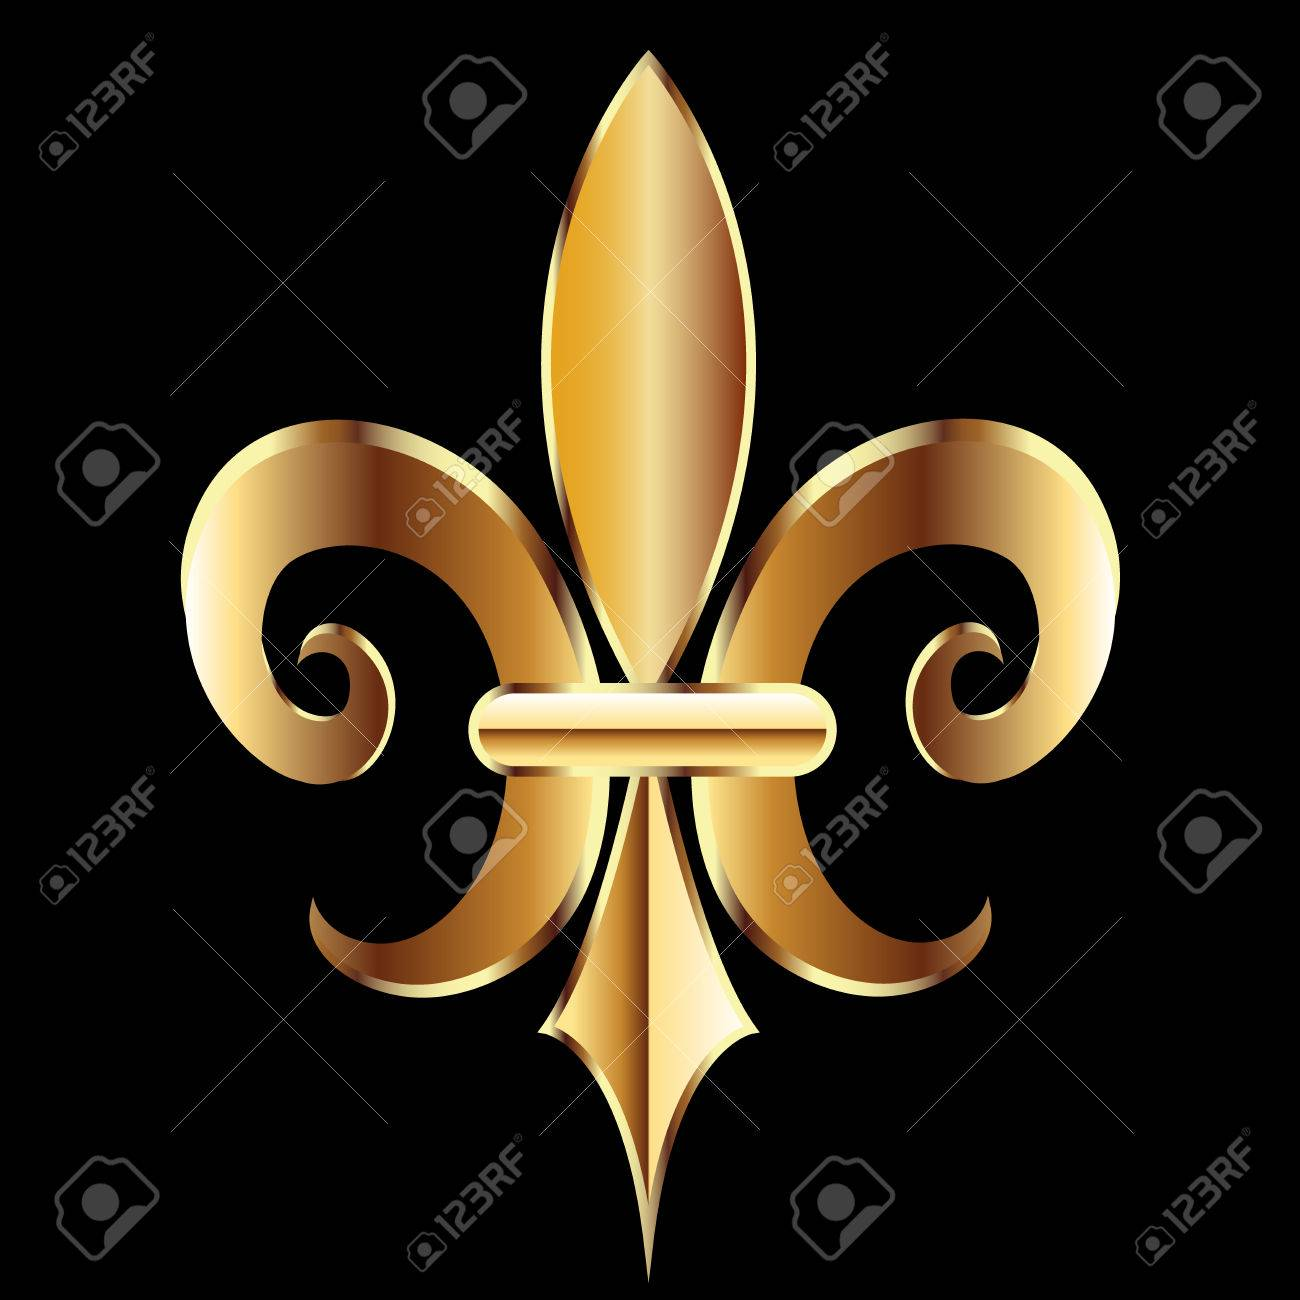 Fleur de lis frame stock photos royalty free business images new orleans symbol flower logo icon vector image template buycottarizona Images